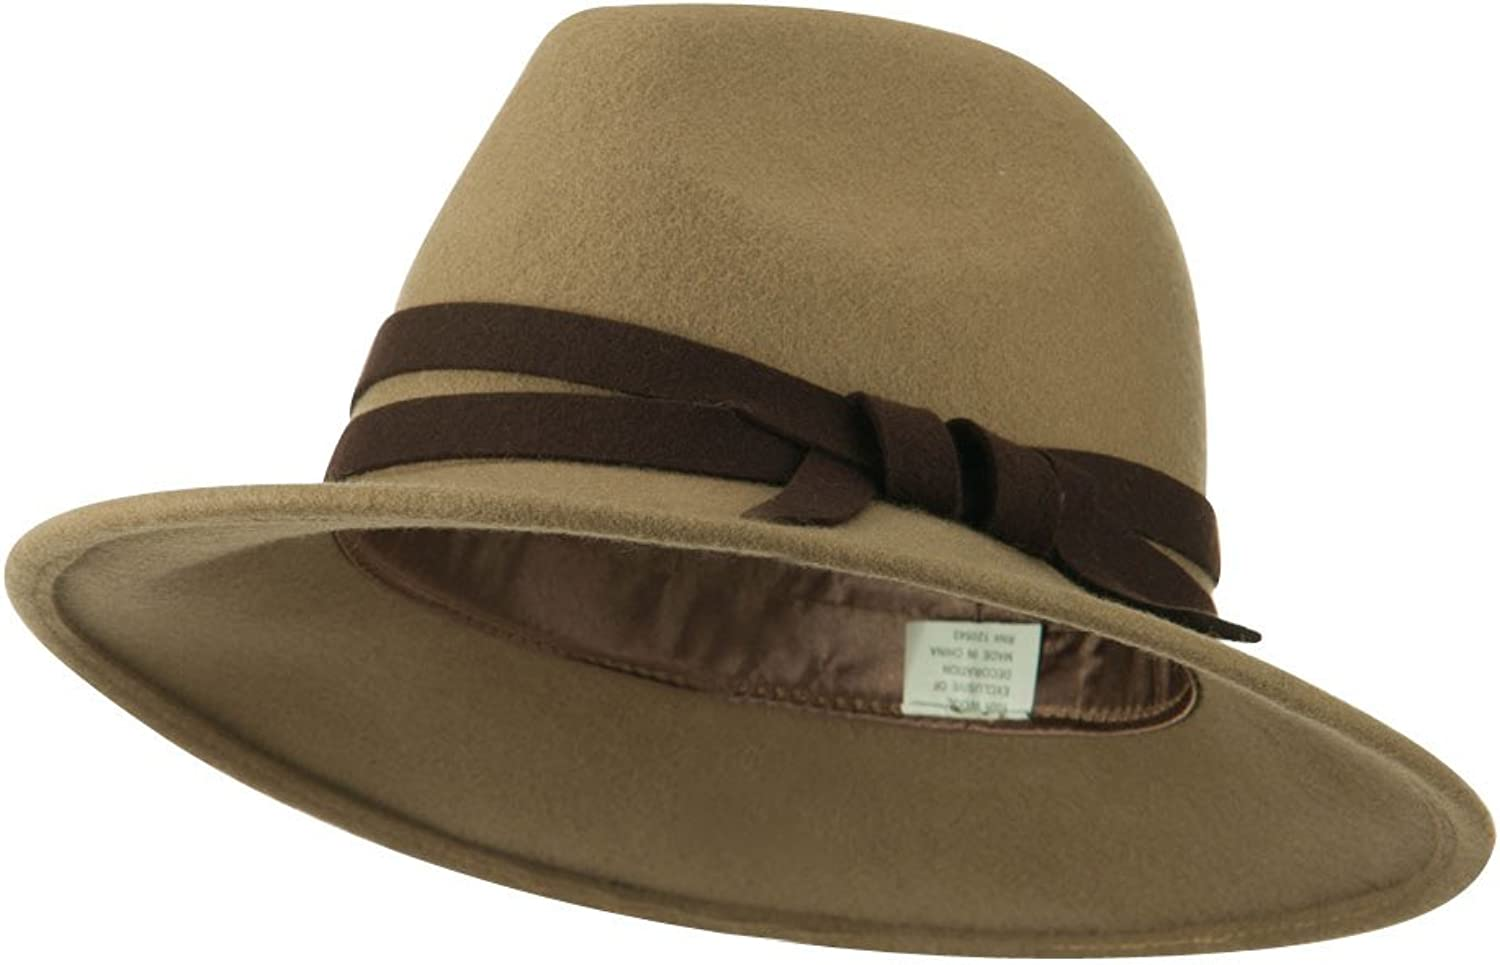 Jeanne Simmons Women's Double Tie Accent Outback Felt Hat  Brown